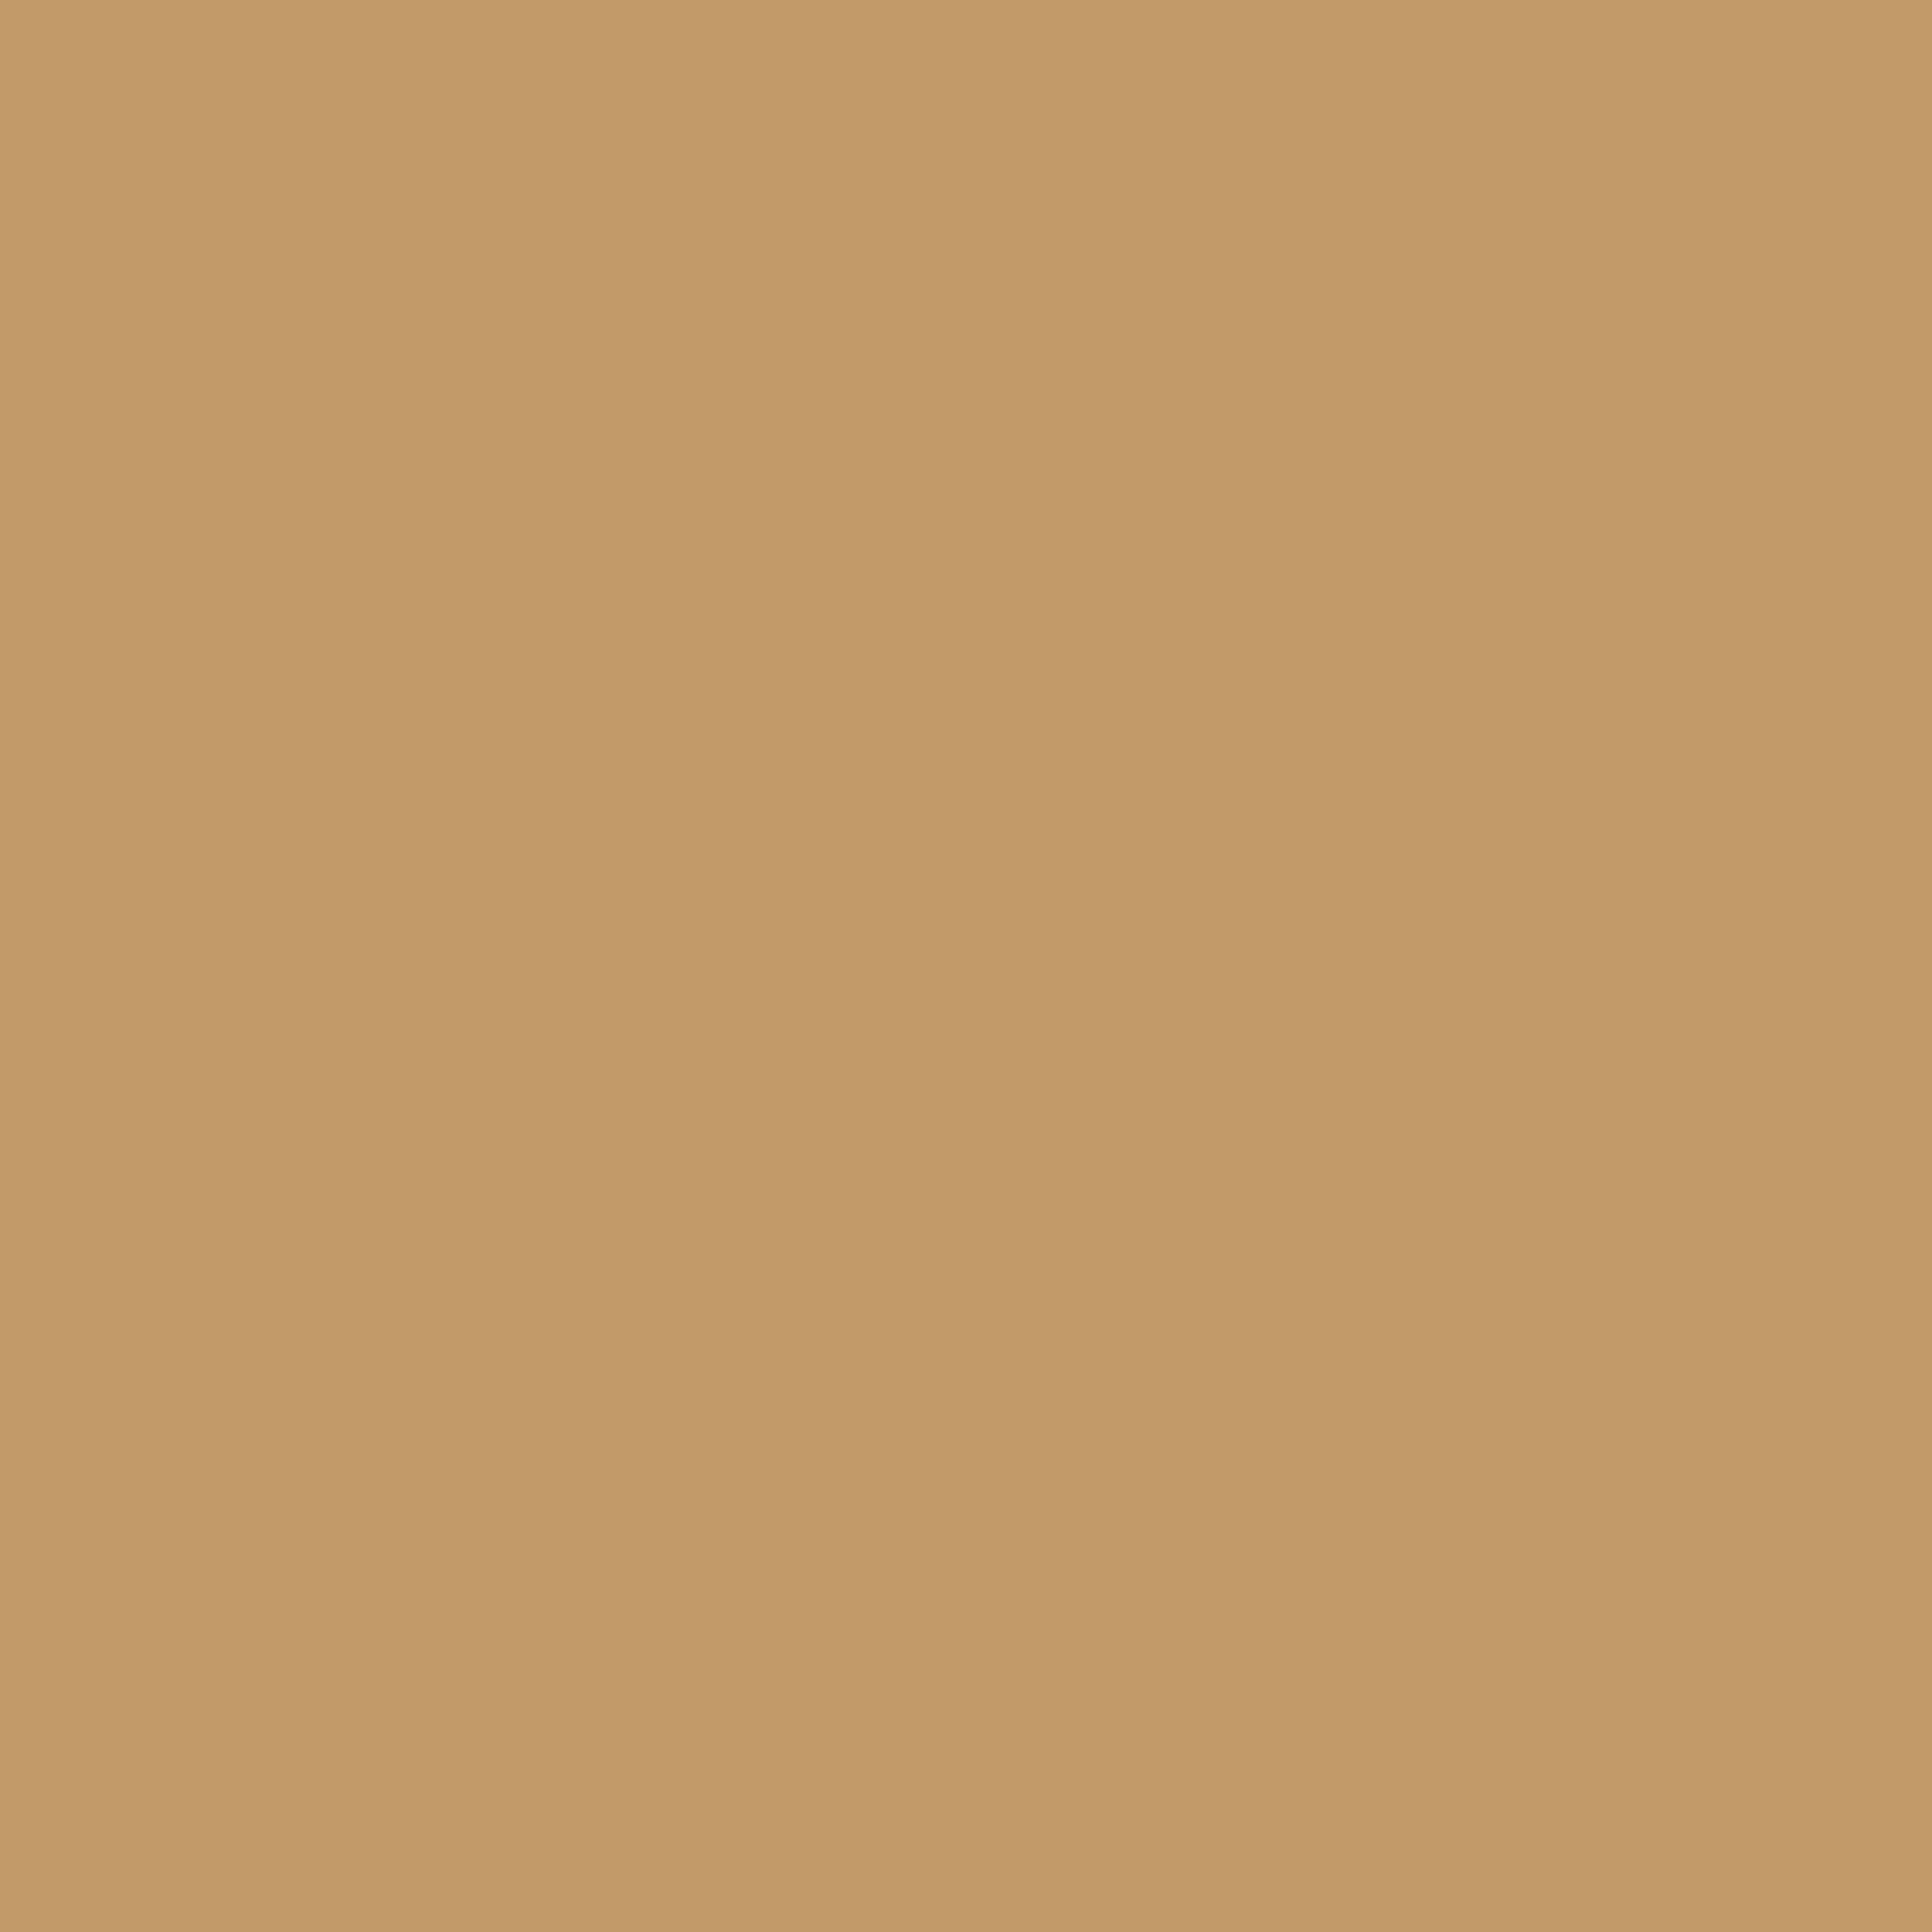 3600x3600 Camel Solid Color Background